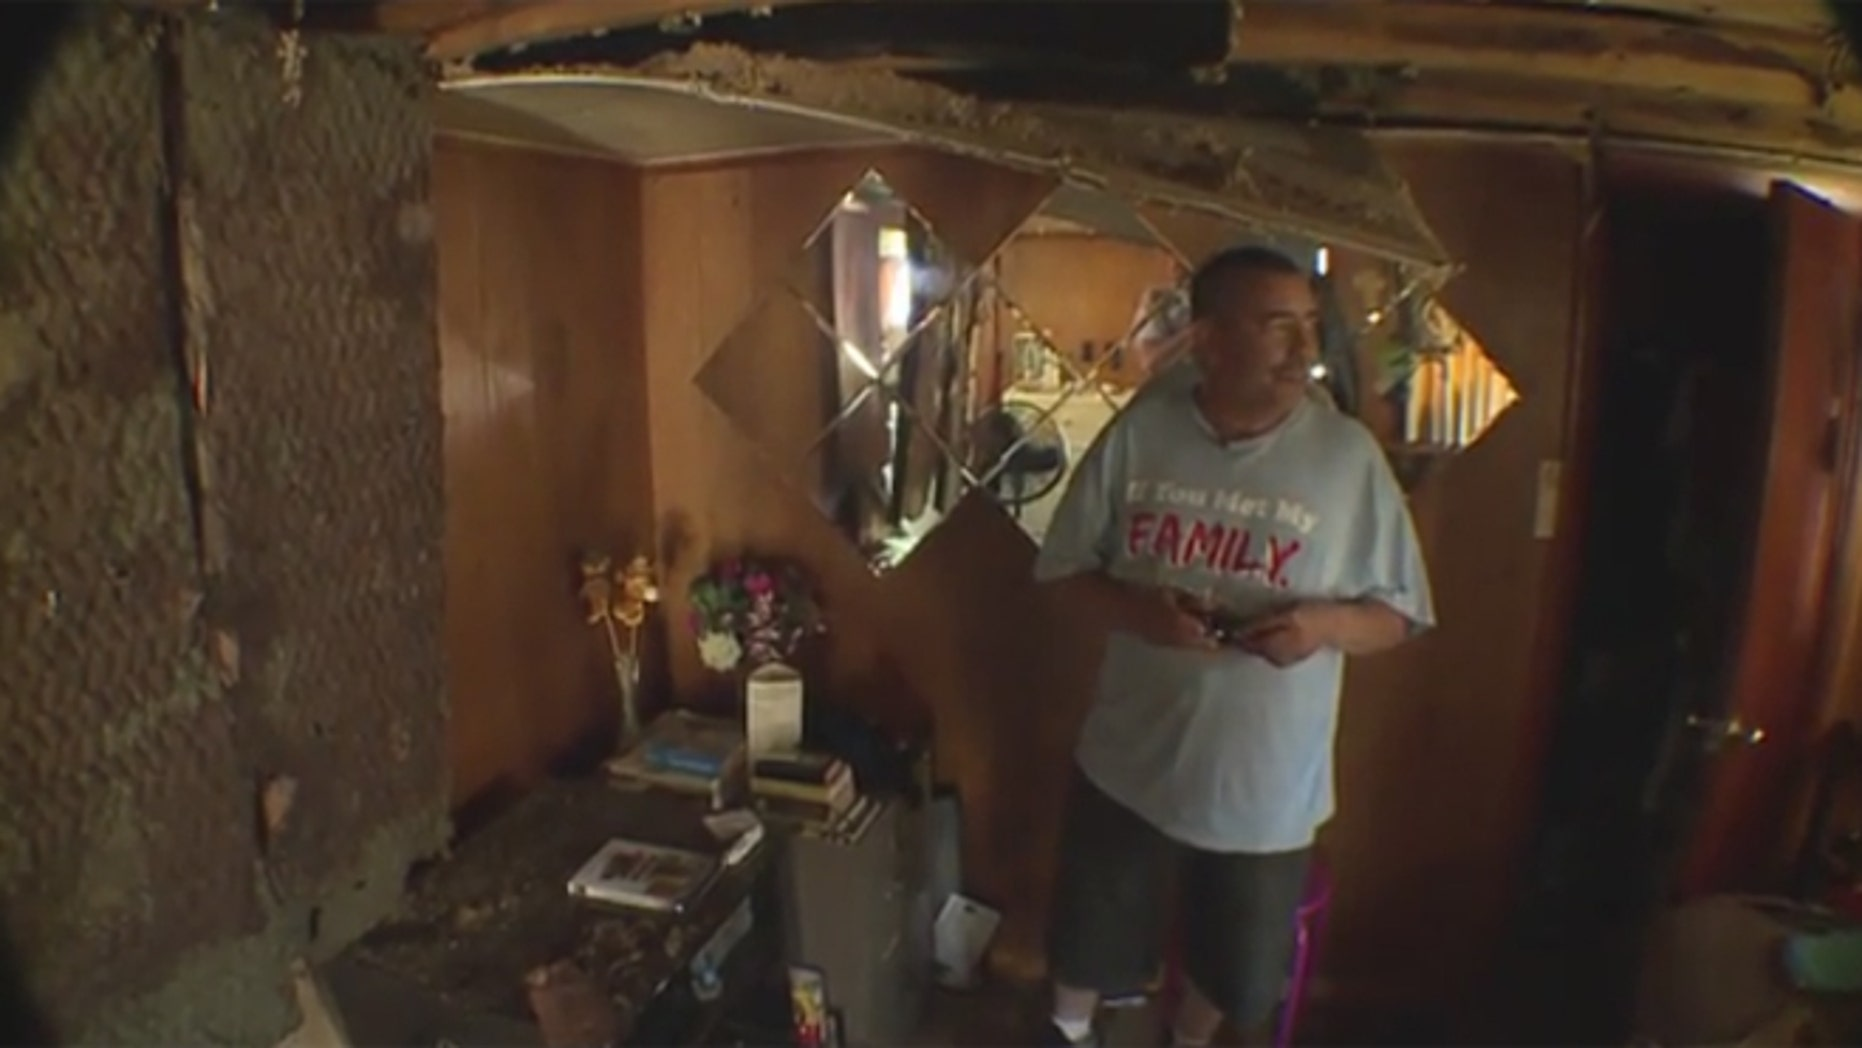 Paul Alva and his wife, who just received a liver transplant, were left homeless after a hailstorm last week destroyed their home near Denver.